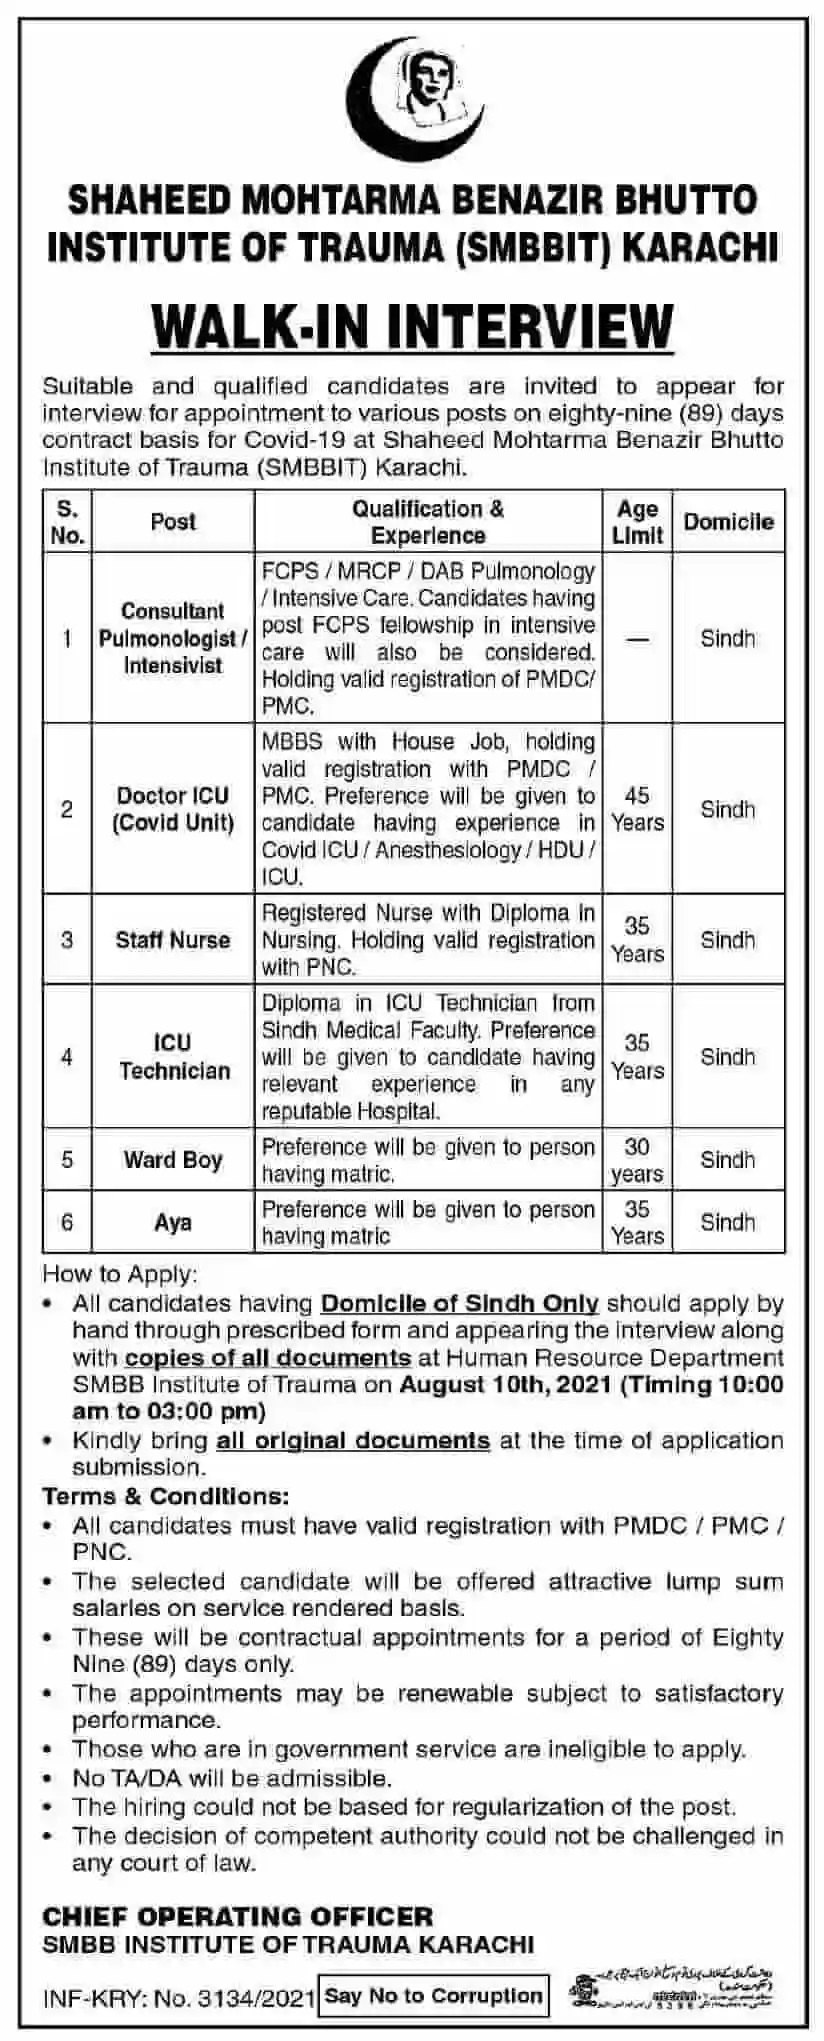 Government Jobs in Karachi Today At SMBBIT Shaheed Mohtarma Benazir Bhutto Institute of Trauma